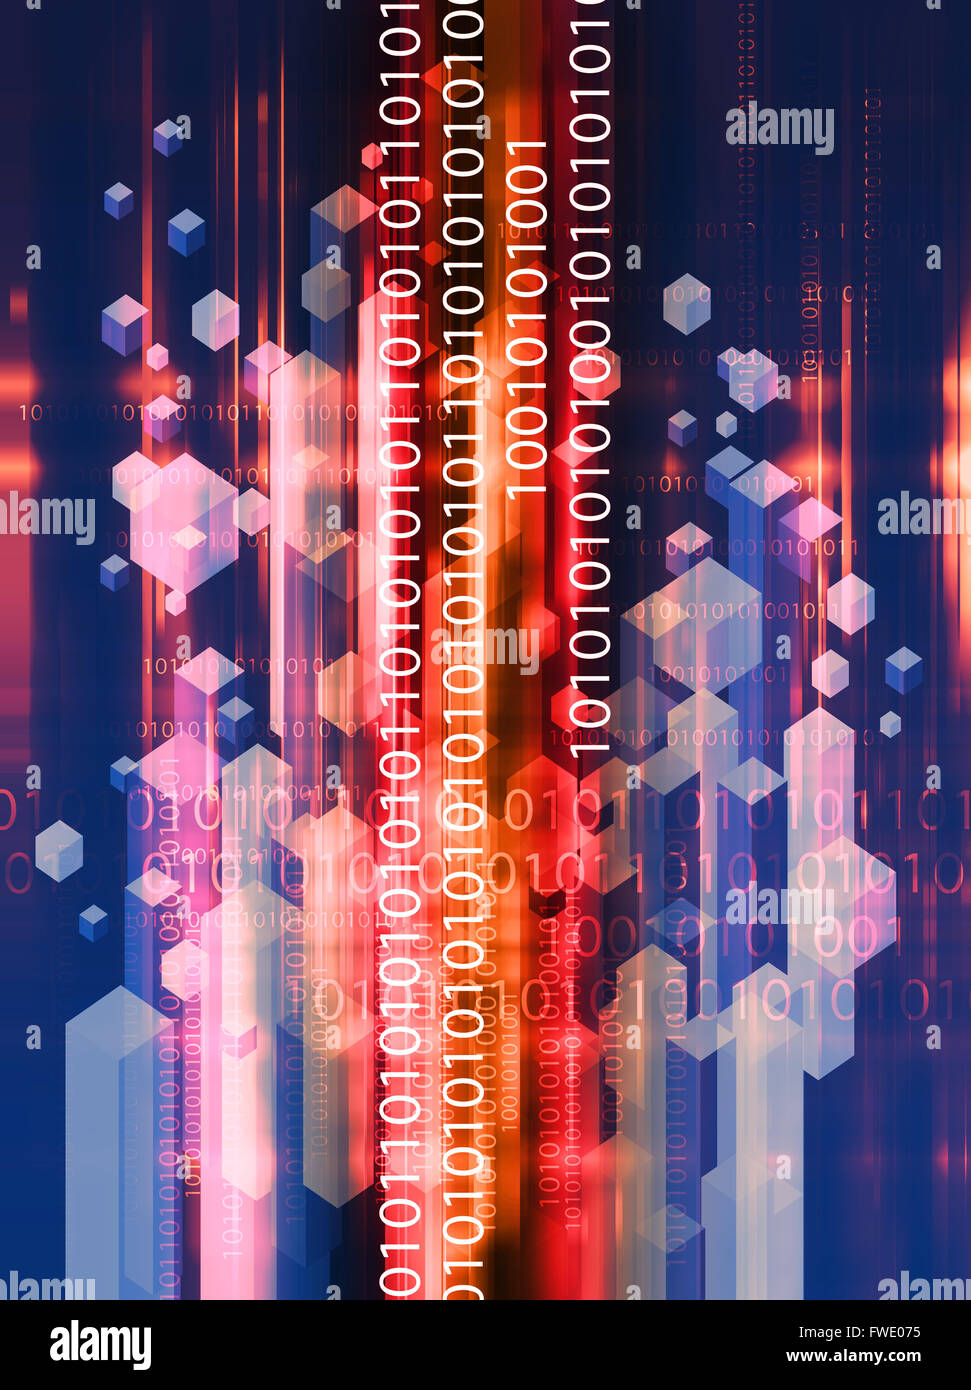 Binary code technology abstract background - Stock Image